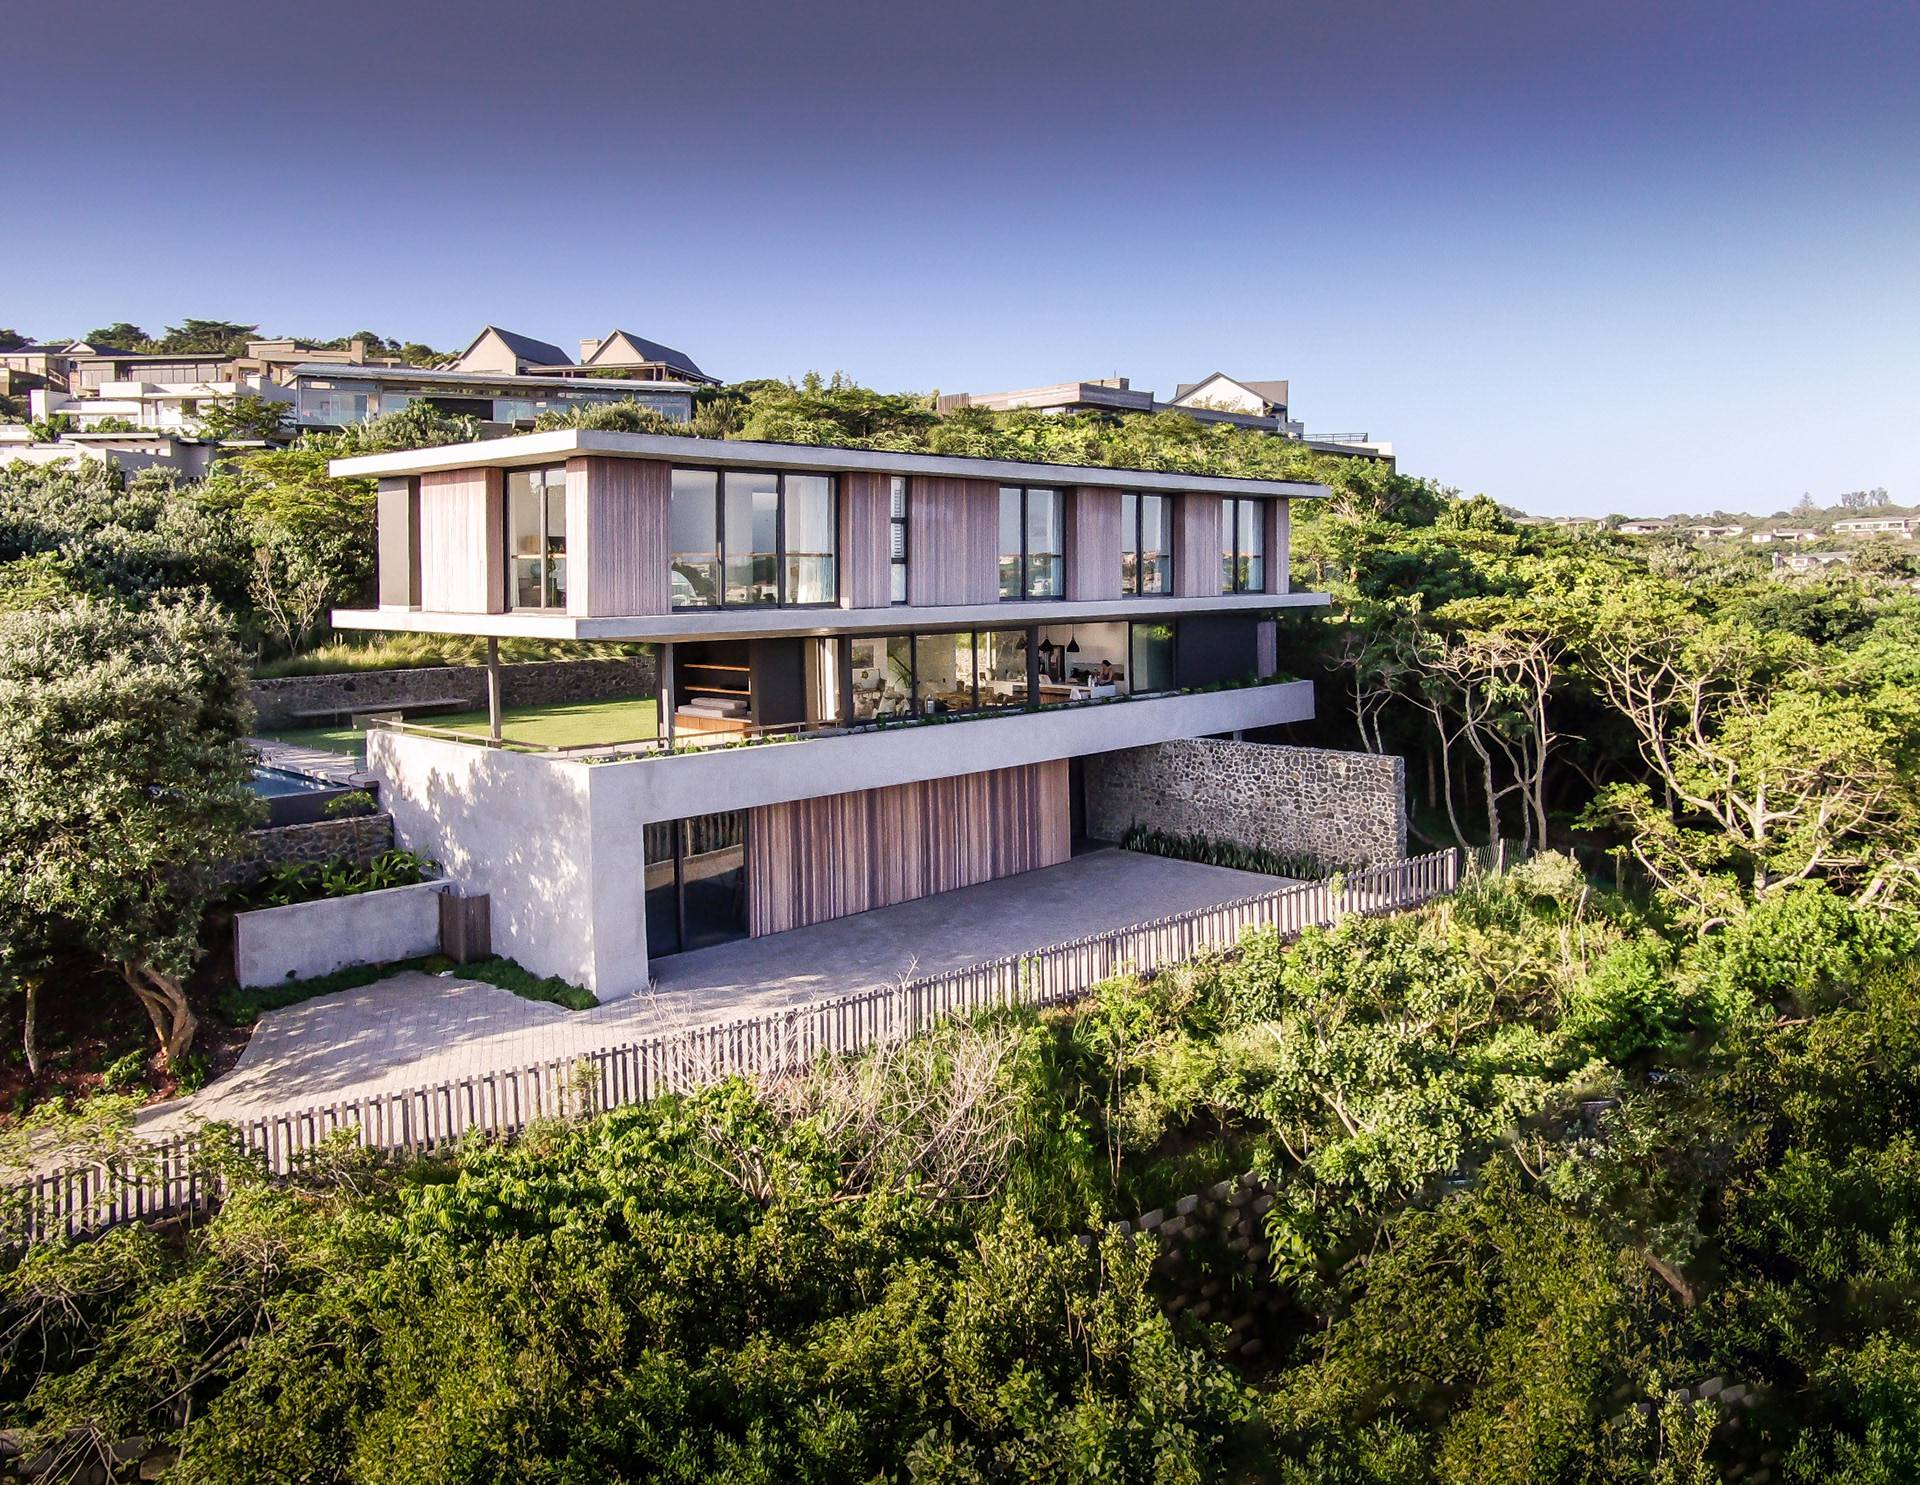 Spectacular Modern Home in South Africa by Bloc Architects